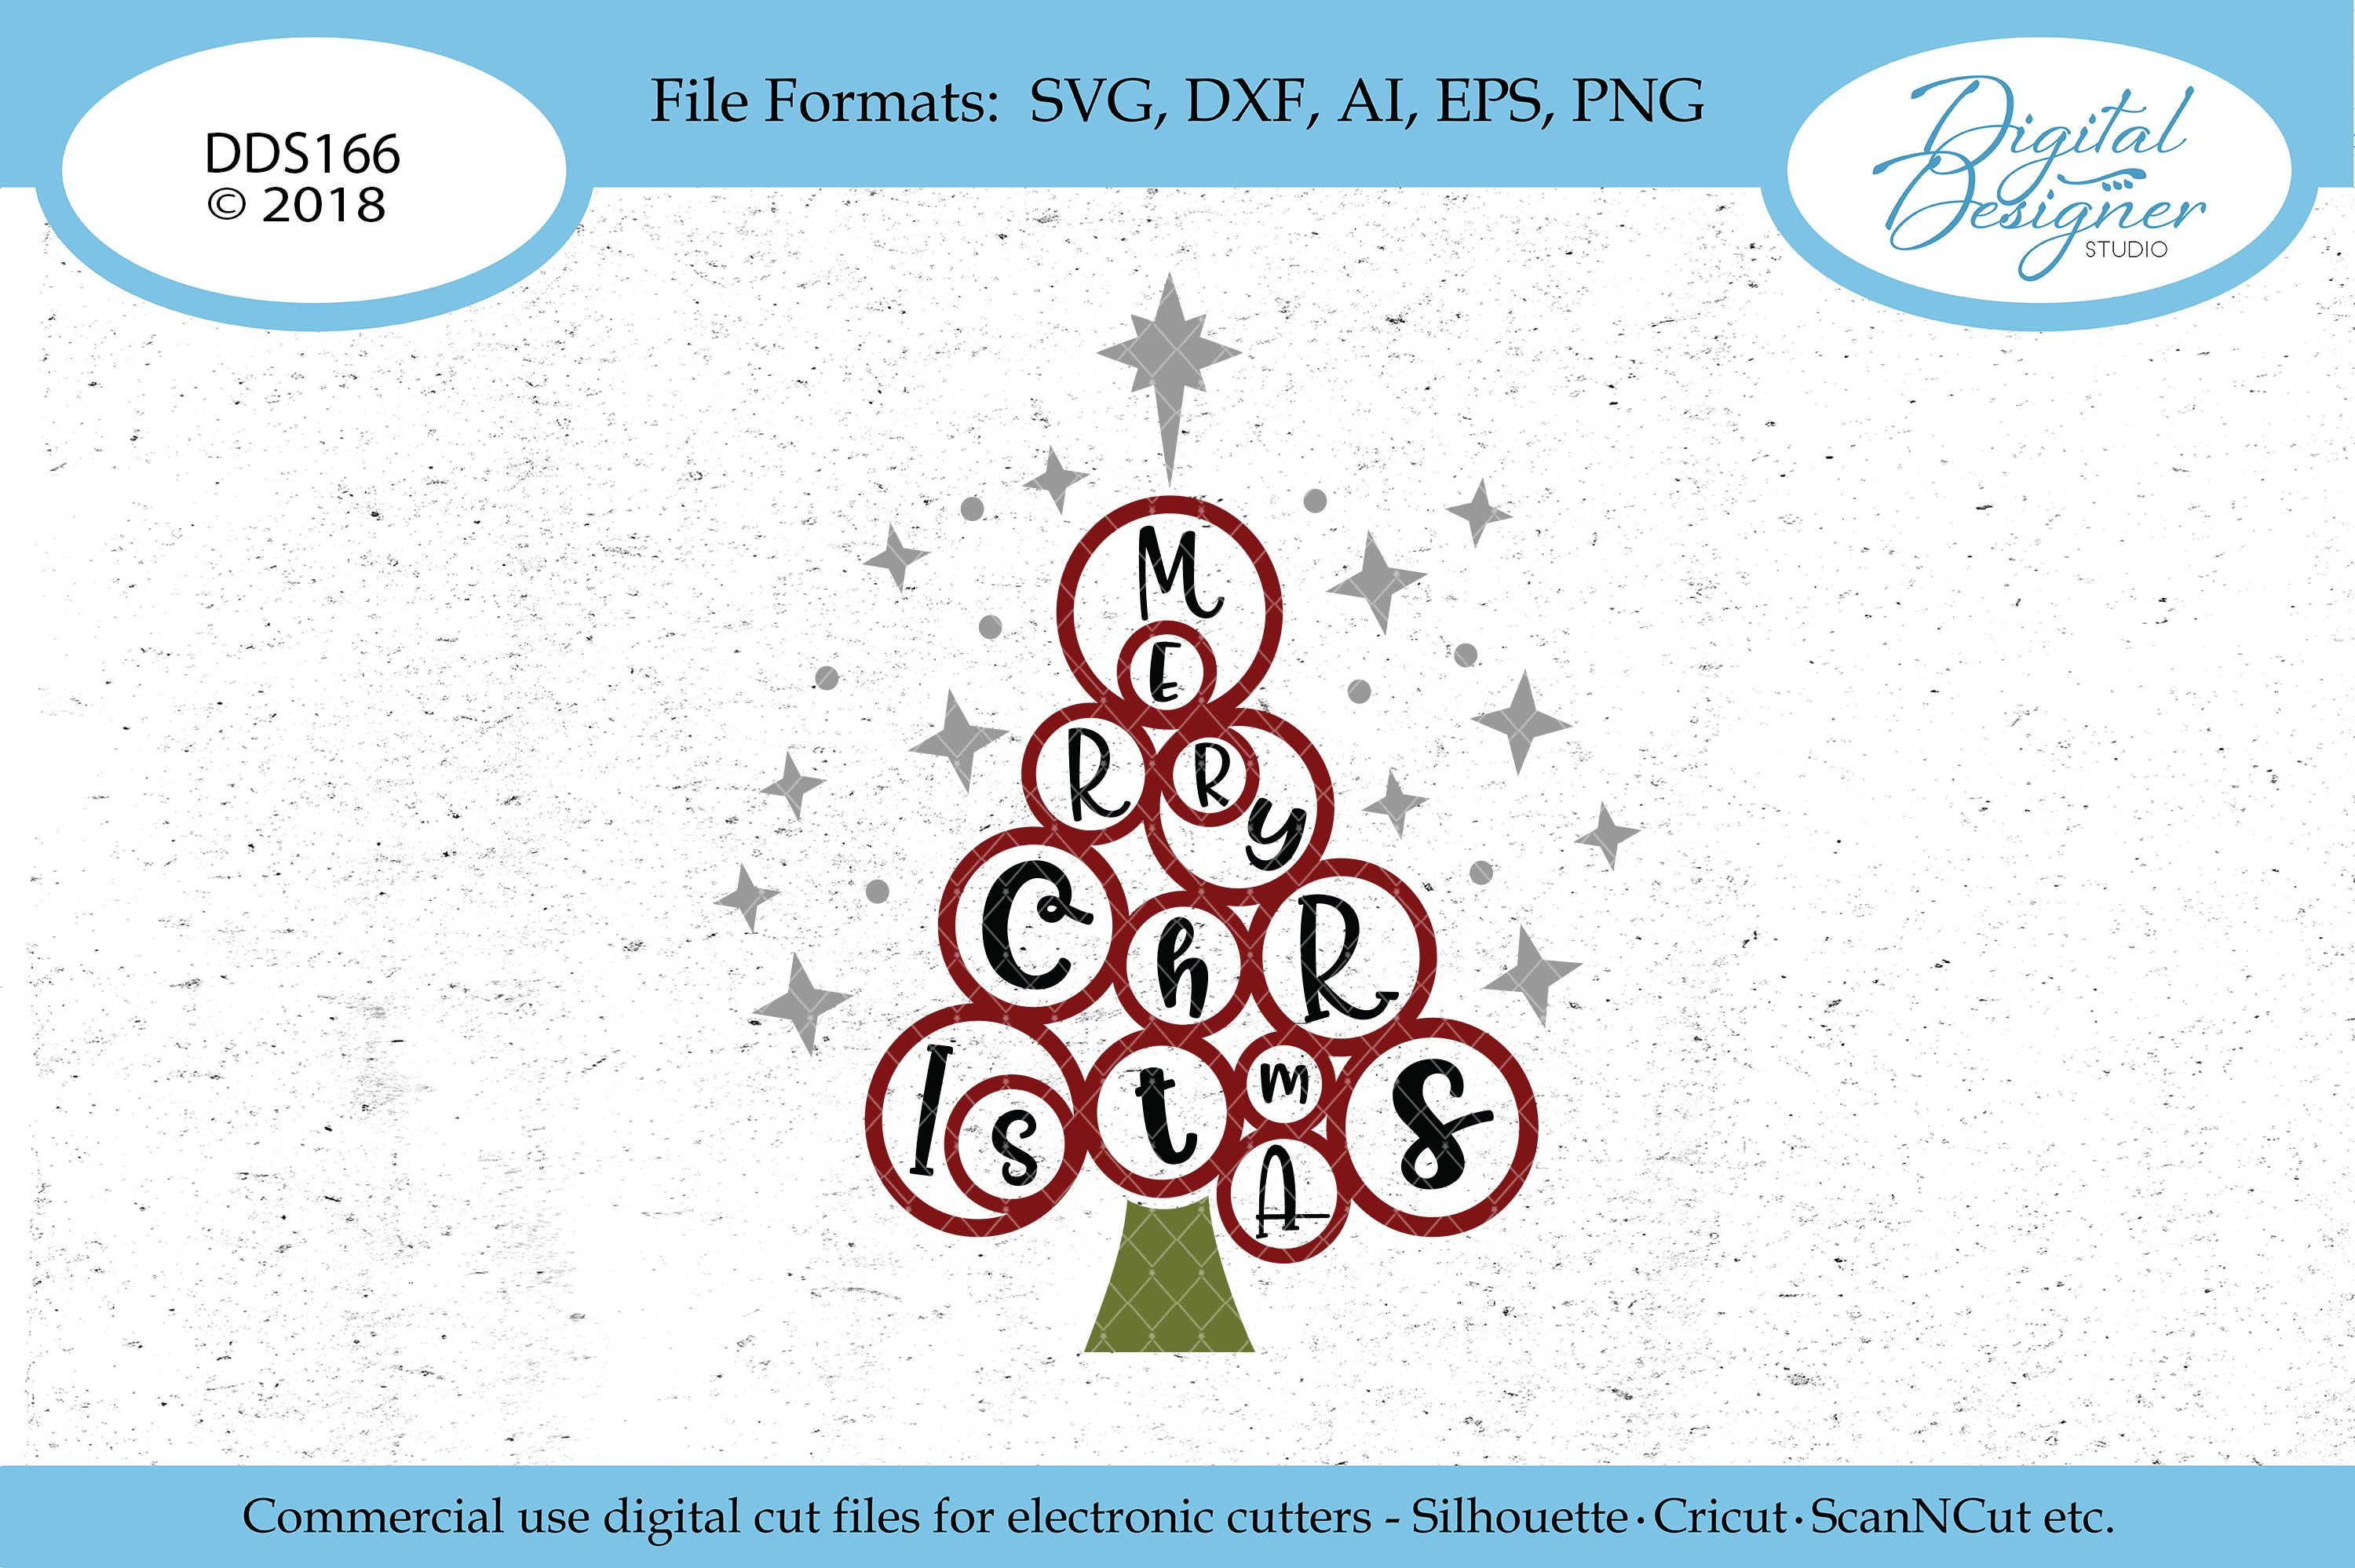 Whimsical Wild Merry Christmas Tree Svg Eps Dxf Png Cut File 119676 Svgs Design Bundles